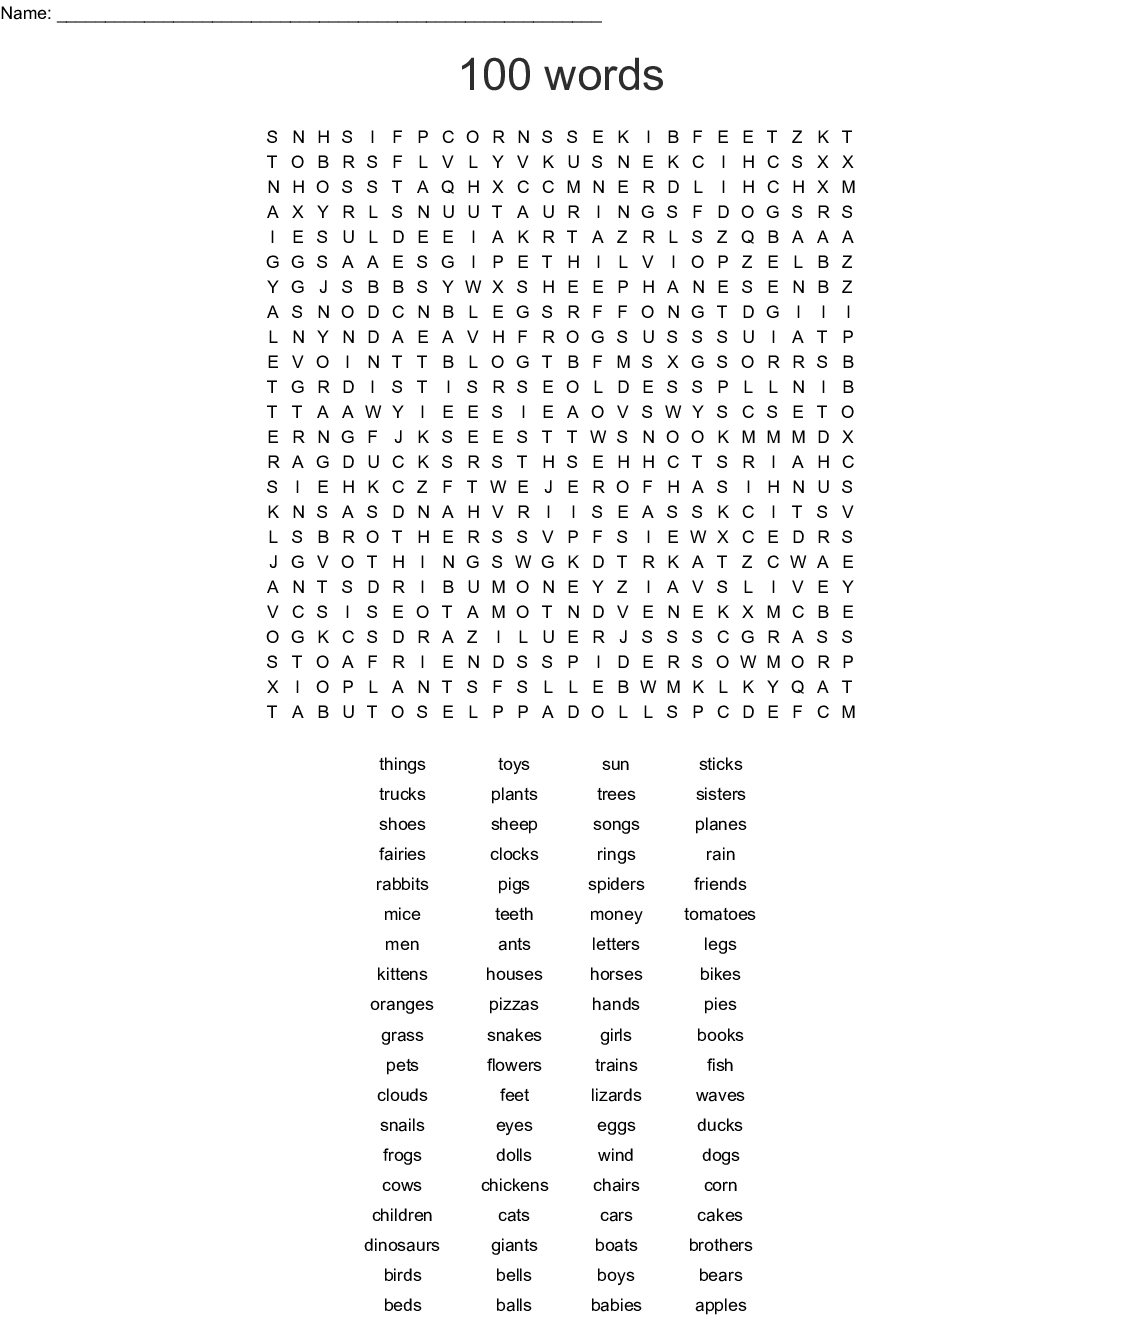 photograph about 100 Word Word Search Printable identify 100 terms Phrase Look - WordMint